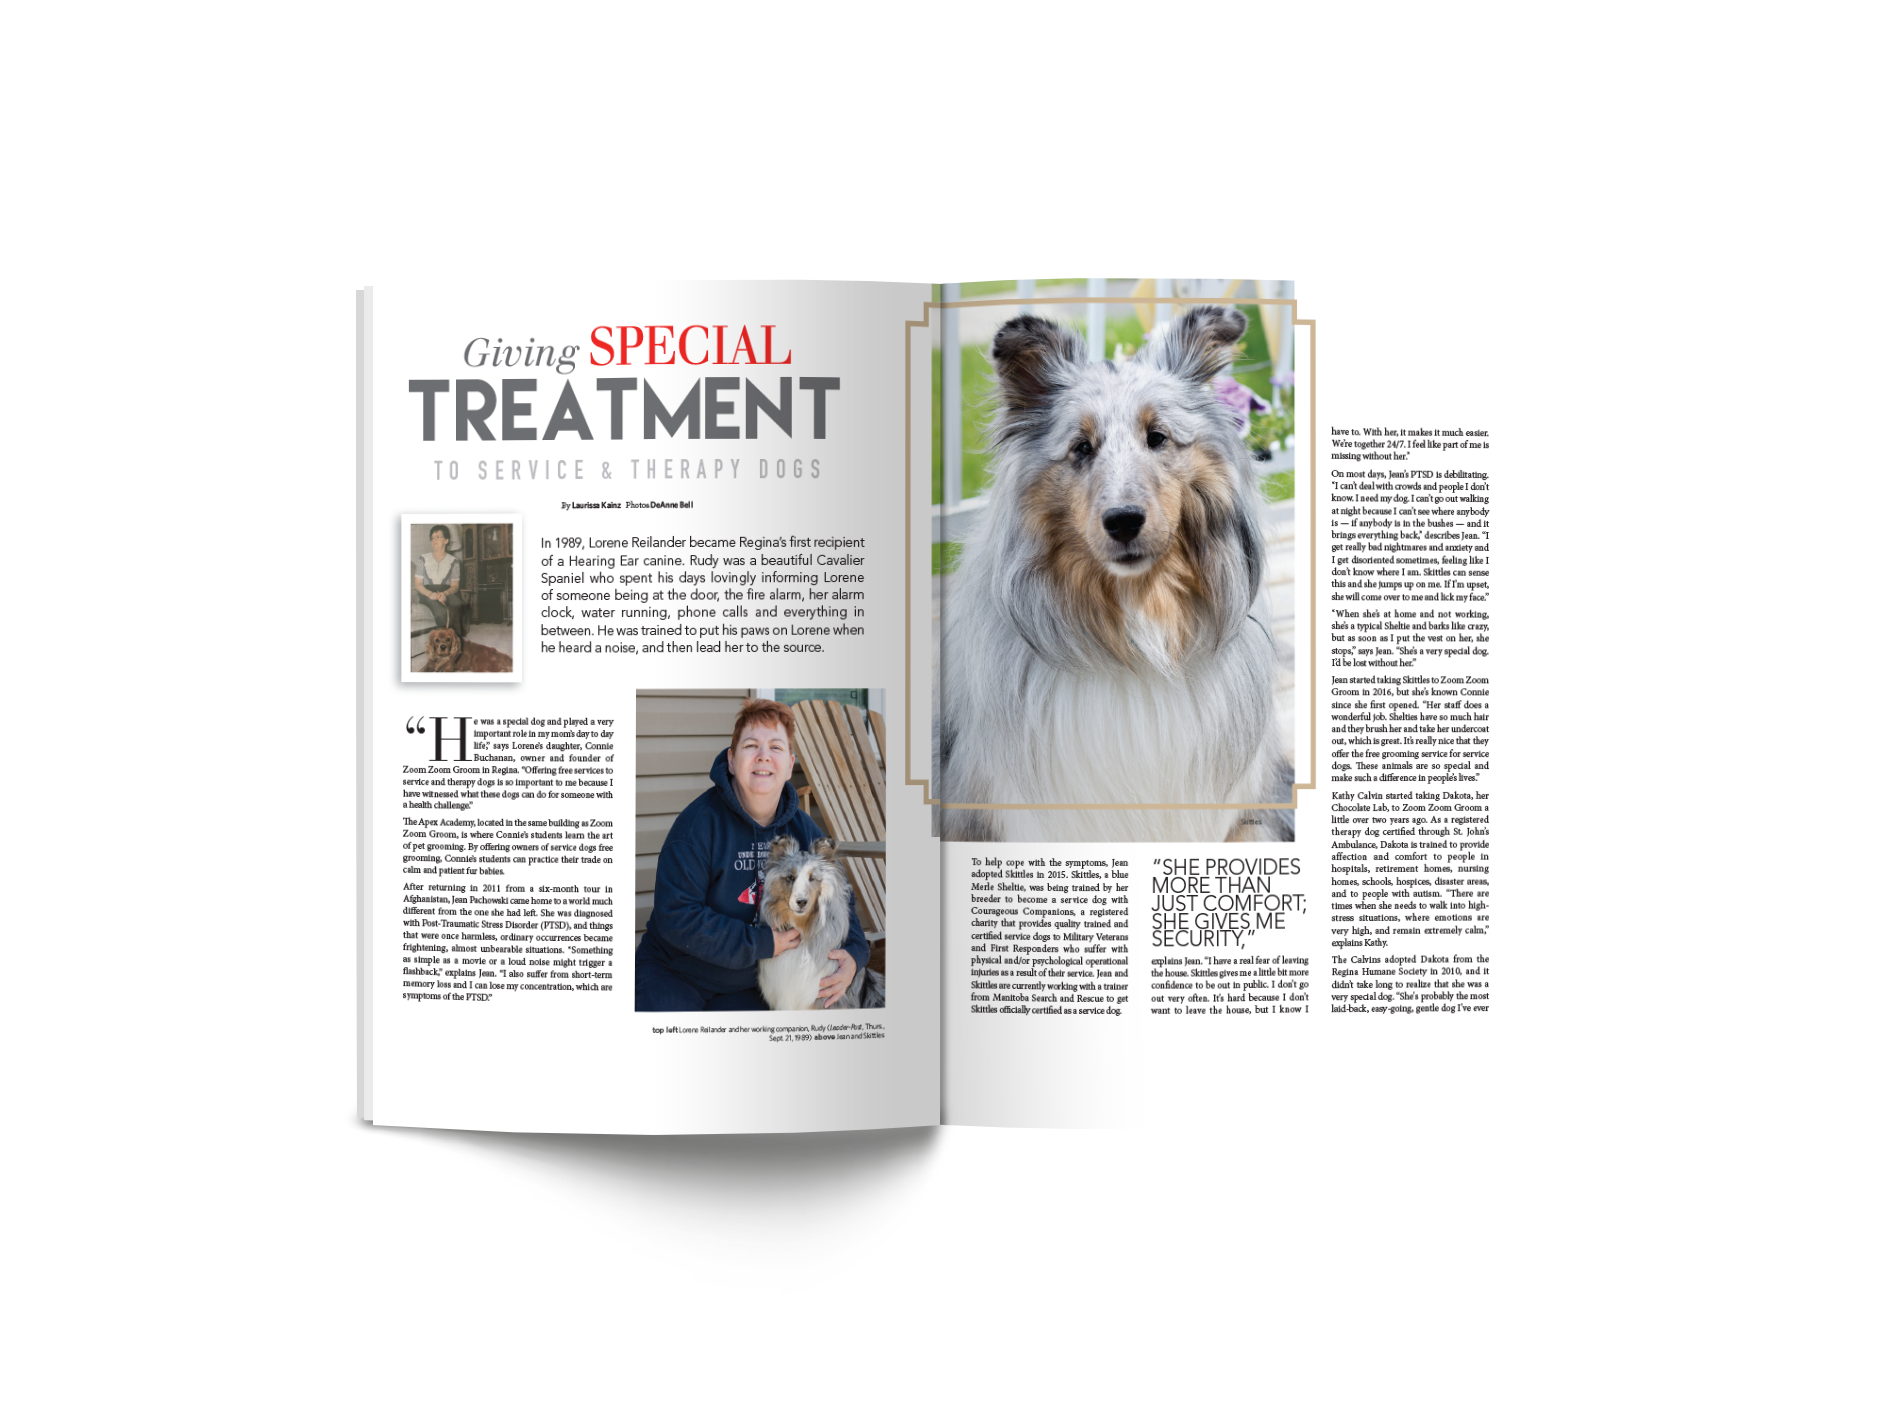 Giving Special Treatment to Service and Therapy Dogs